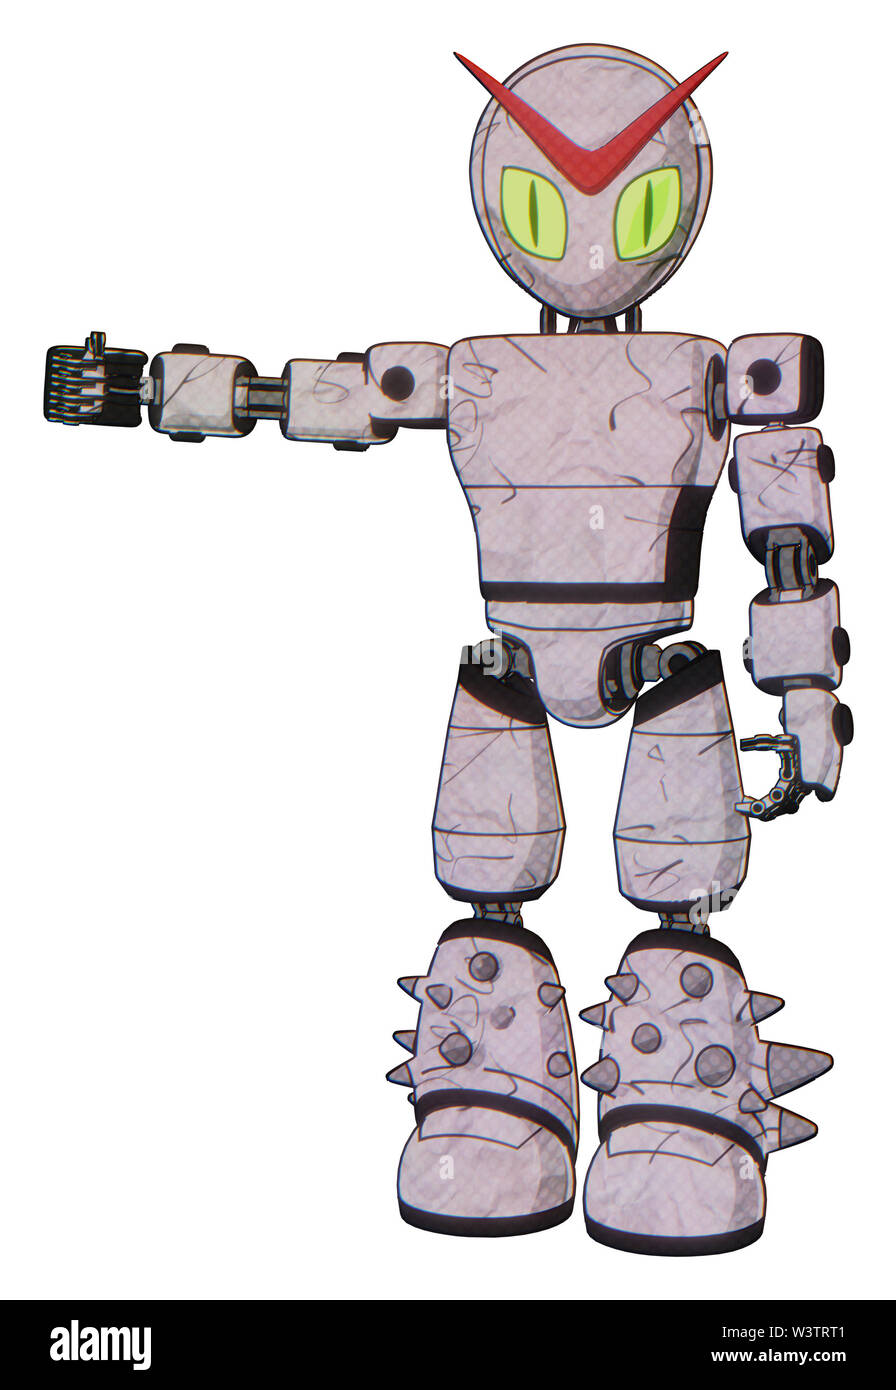 Automaton containing elements: grey alien style head, cat's eyes, light chest exoshielding, prototype exoplate chest, light leg exoshielding, spike... Stock Photo